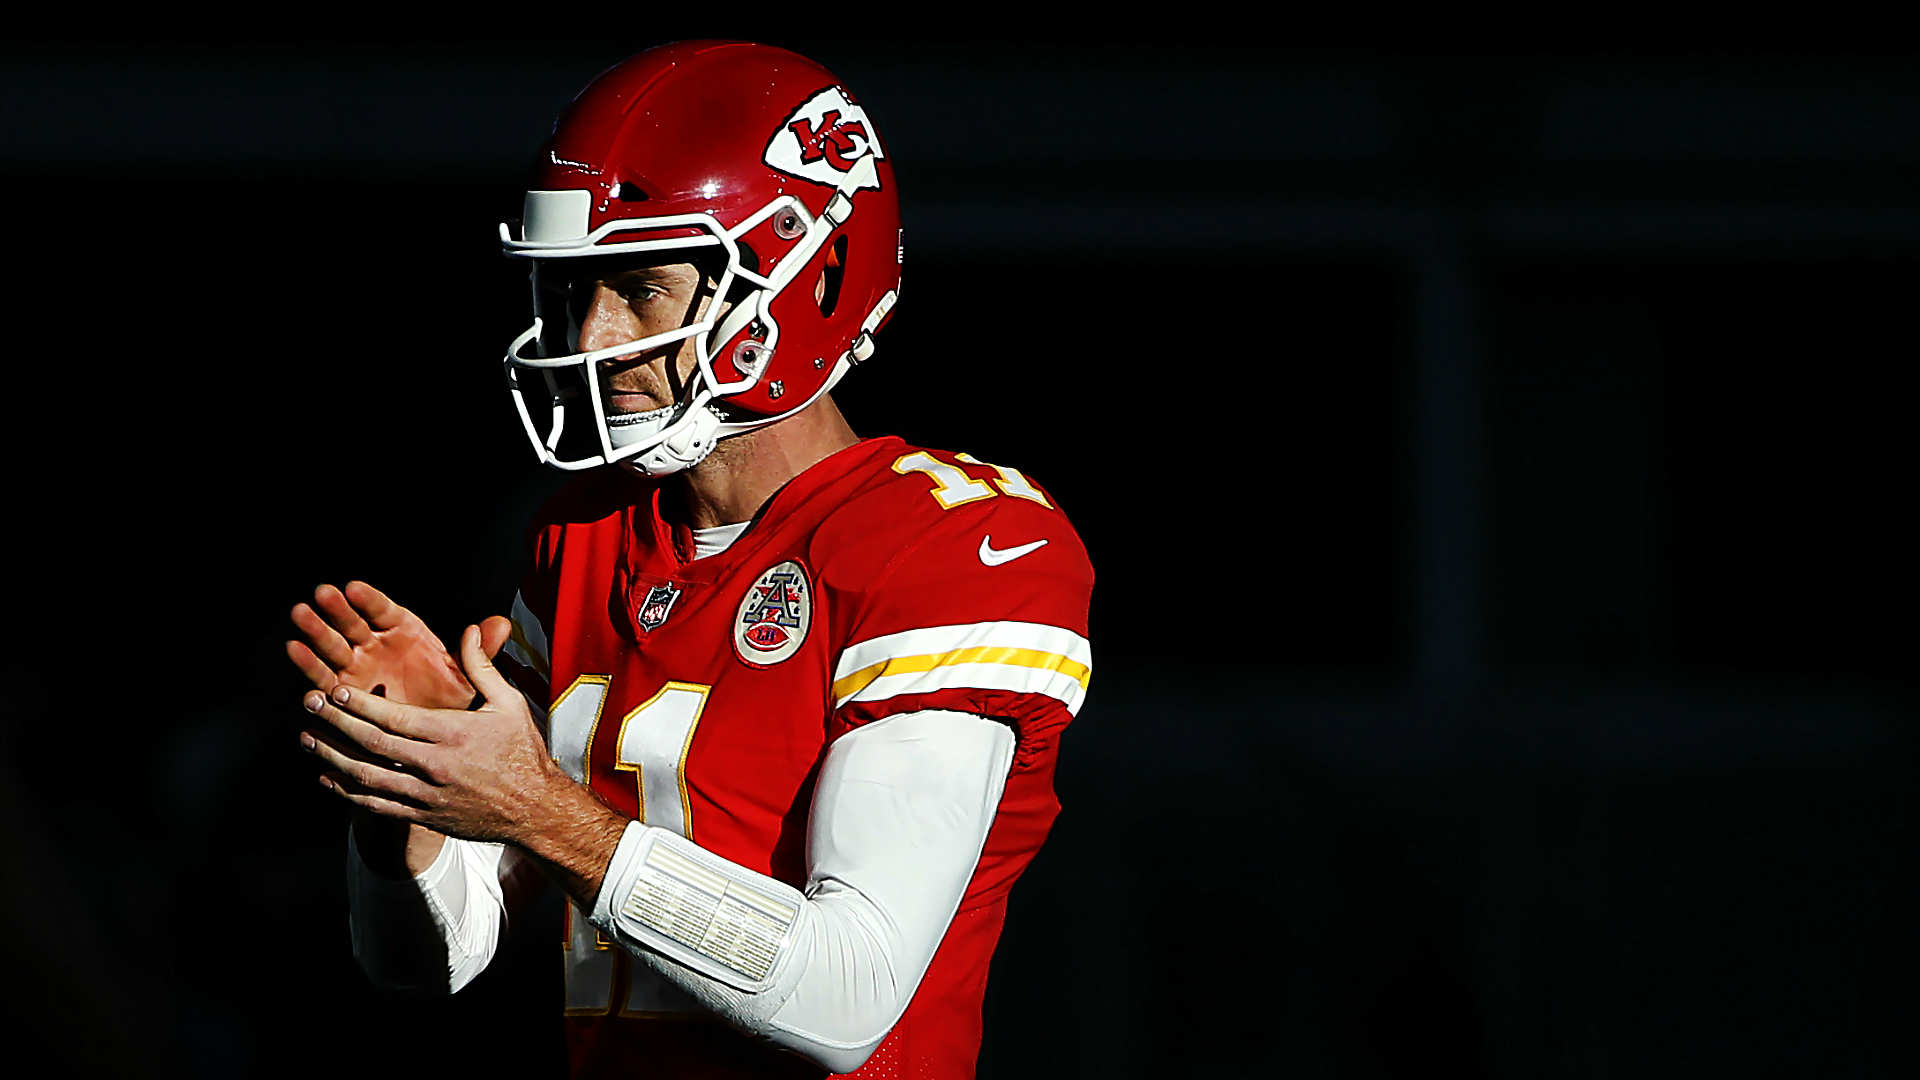 Chiefs 'ready to get back on track' against Bills